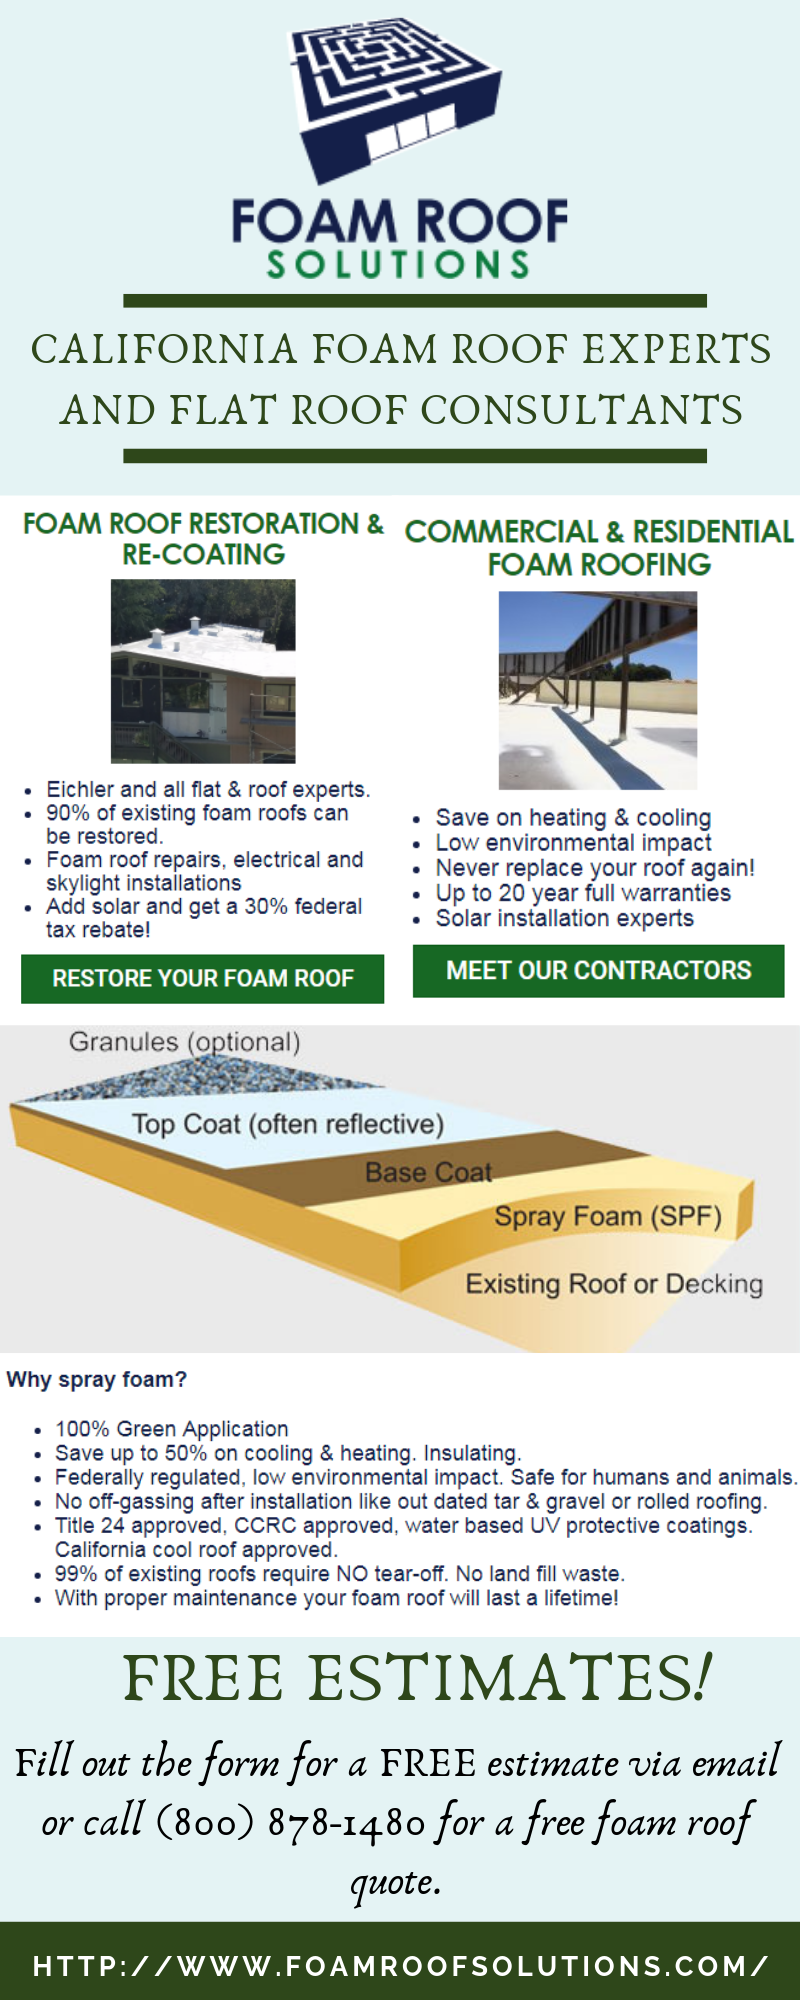 Foam Roof Solutions Is The Leading Spray Foam Roofing Contractors